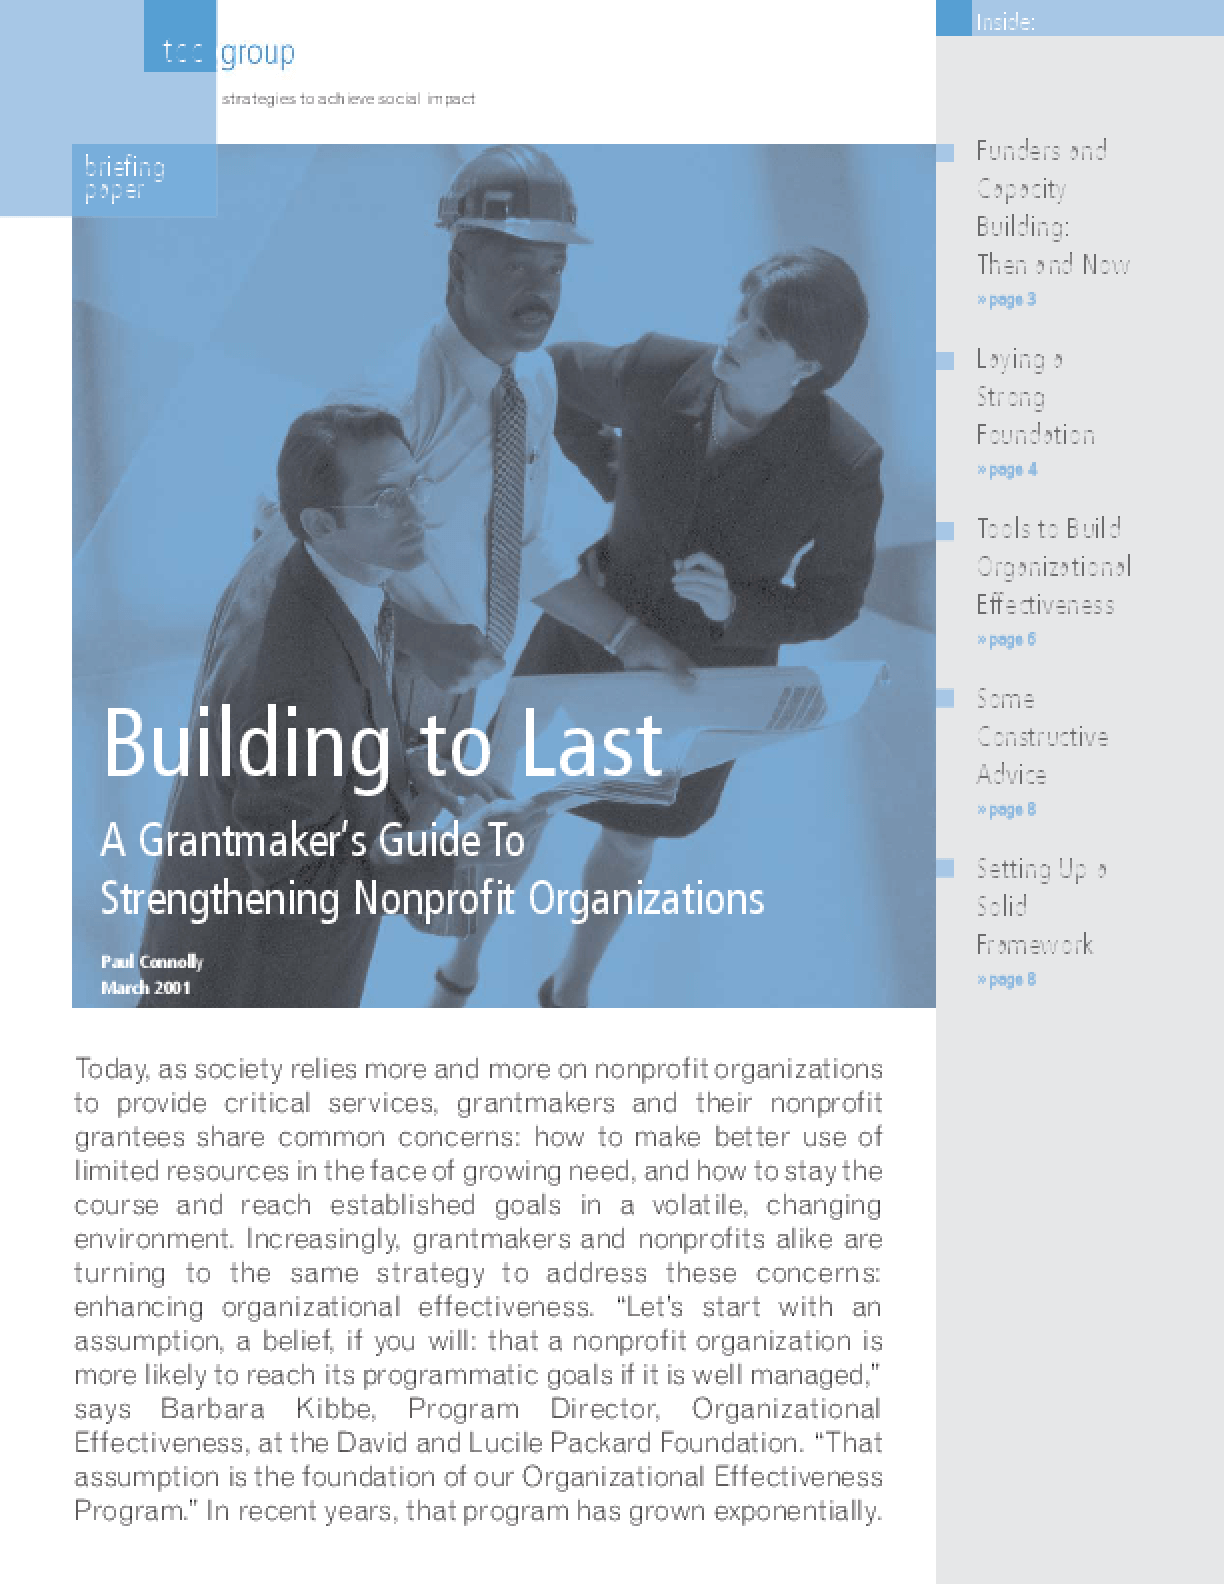 Building to Last: A Grantmaker's Guide to Strengthening Nonprofit Organizations